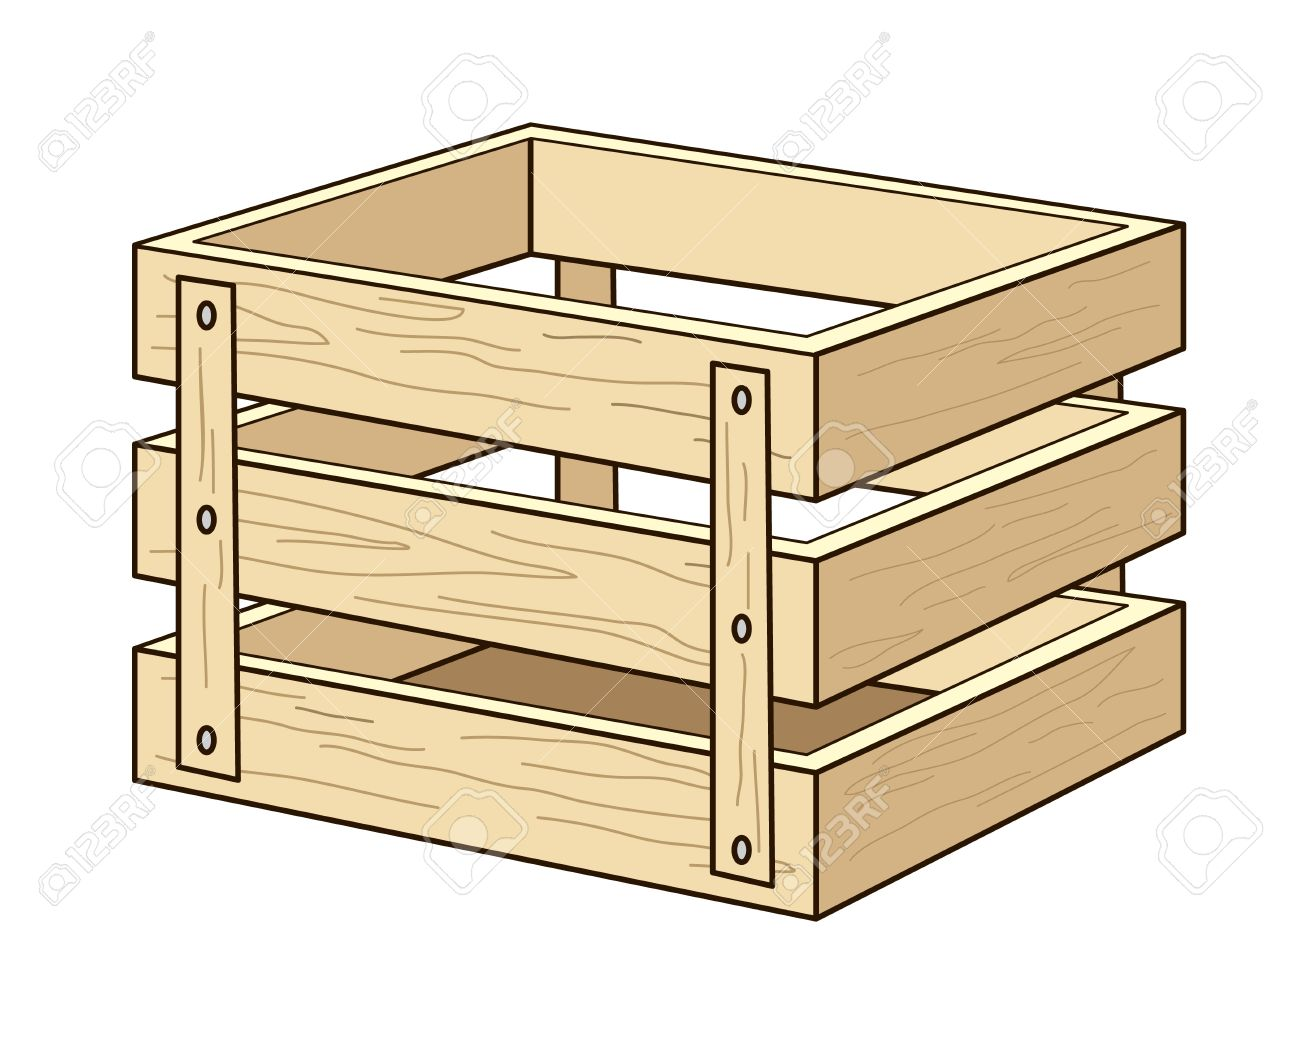 Wood box clipart.